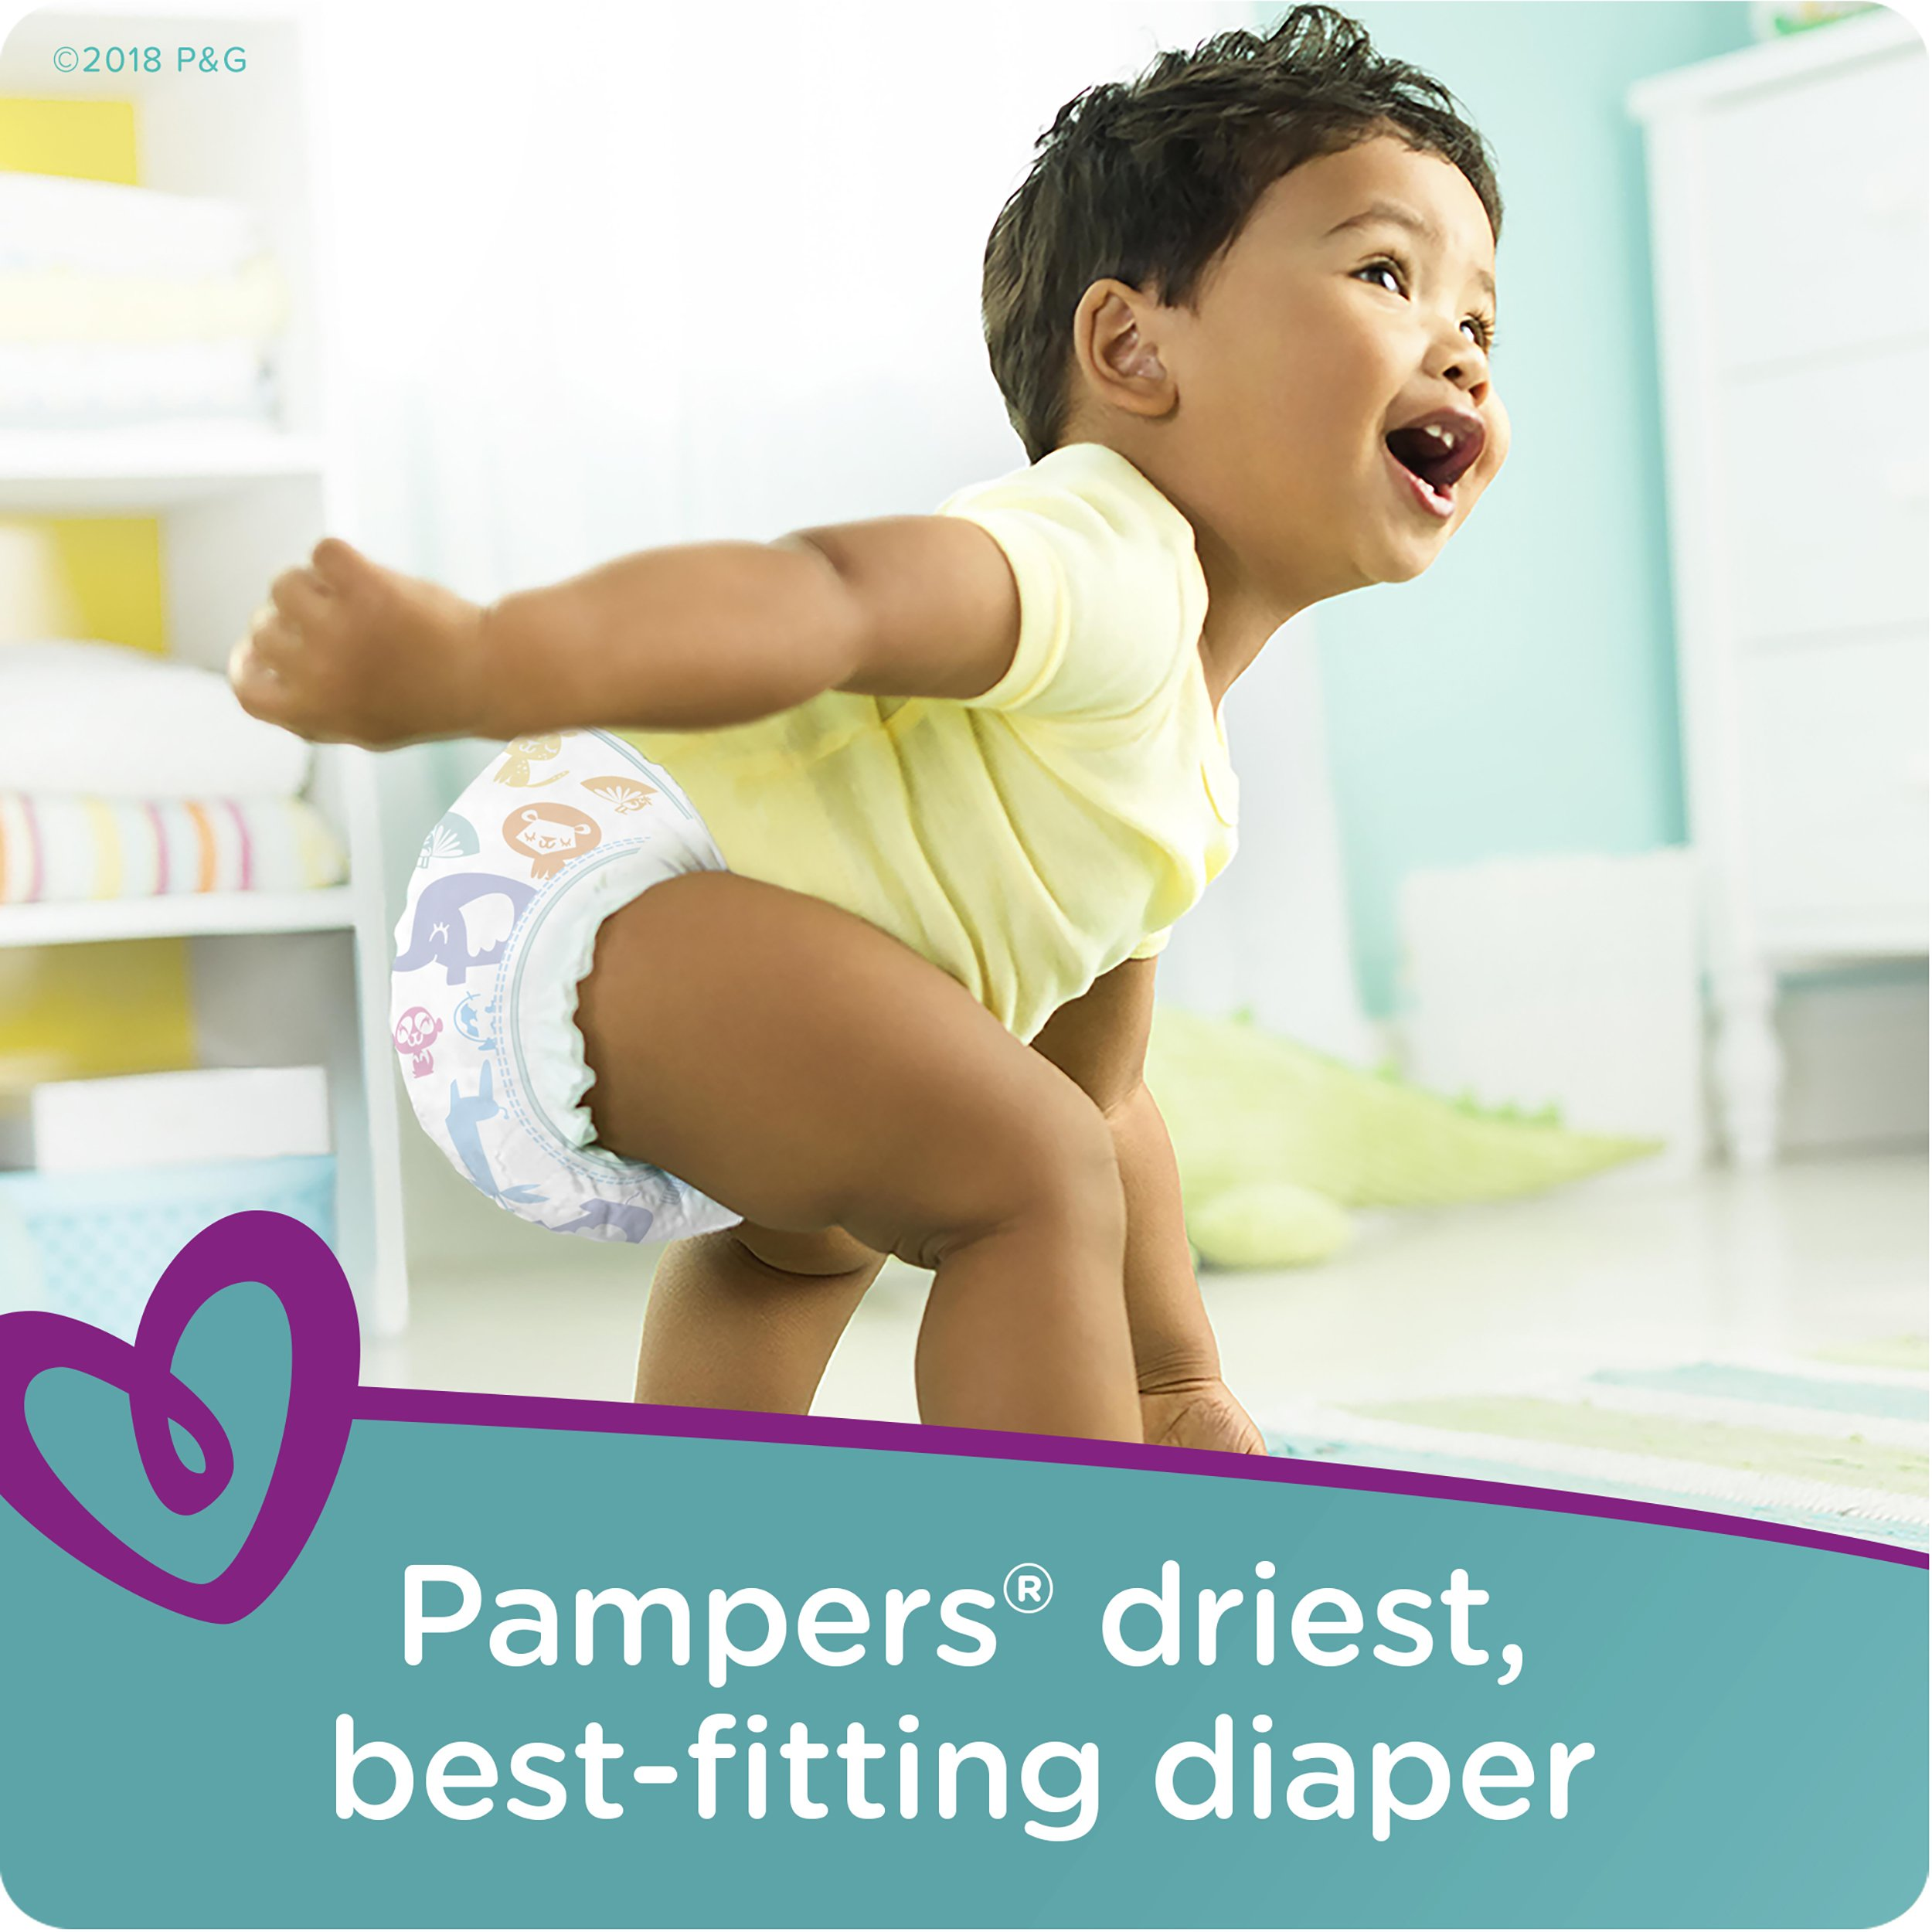 Pampers Cruisers Disposable Diapers Size 6, 108 Count by Pampers (Image #3)